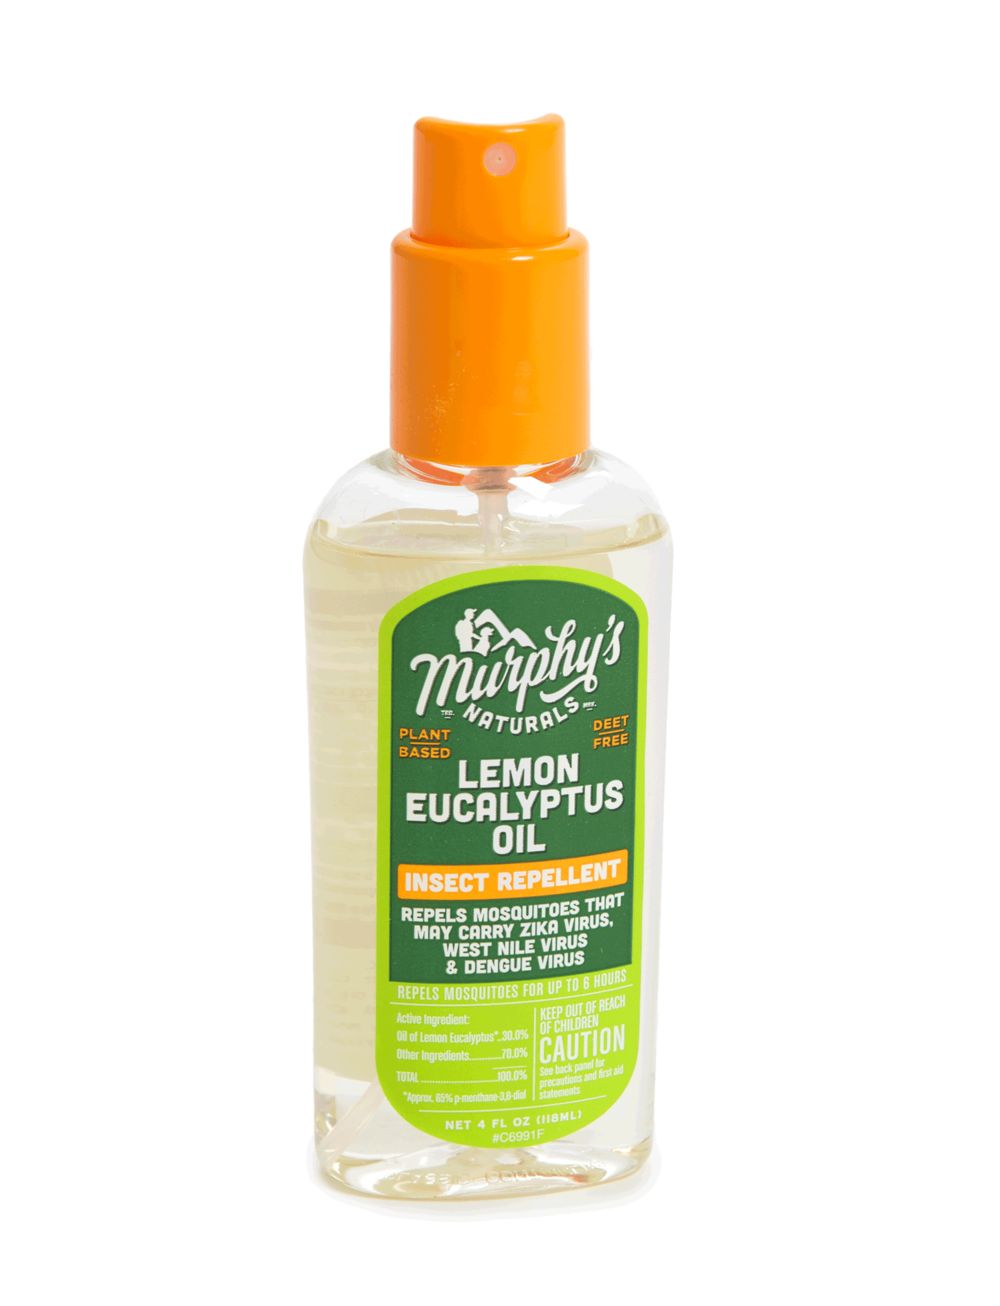 Lemon Eucalyptus Oil Mosquito Repellent